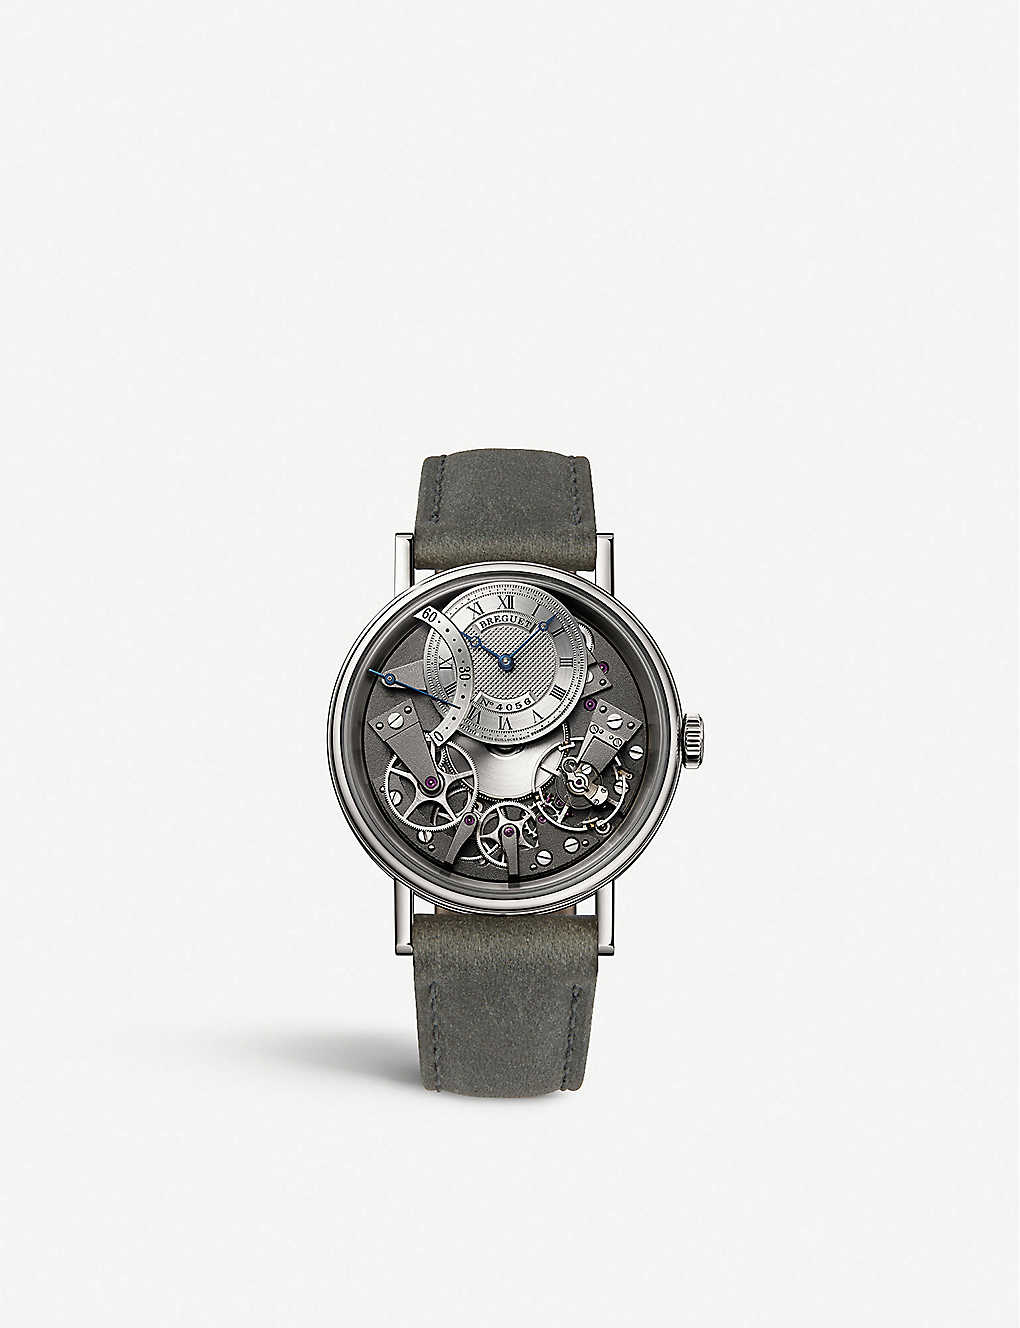 BREGUET: G7097BB/G1/9WU Tradition 18ct white-gold and leather watch